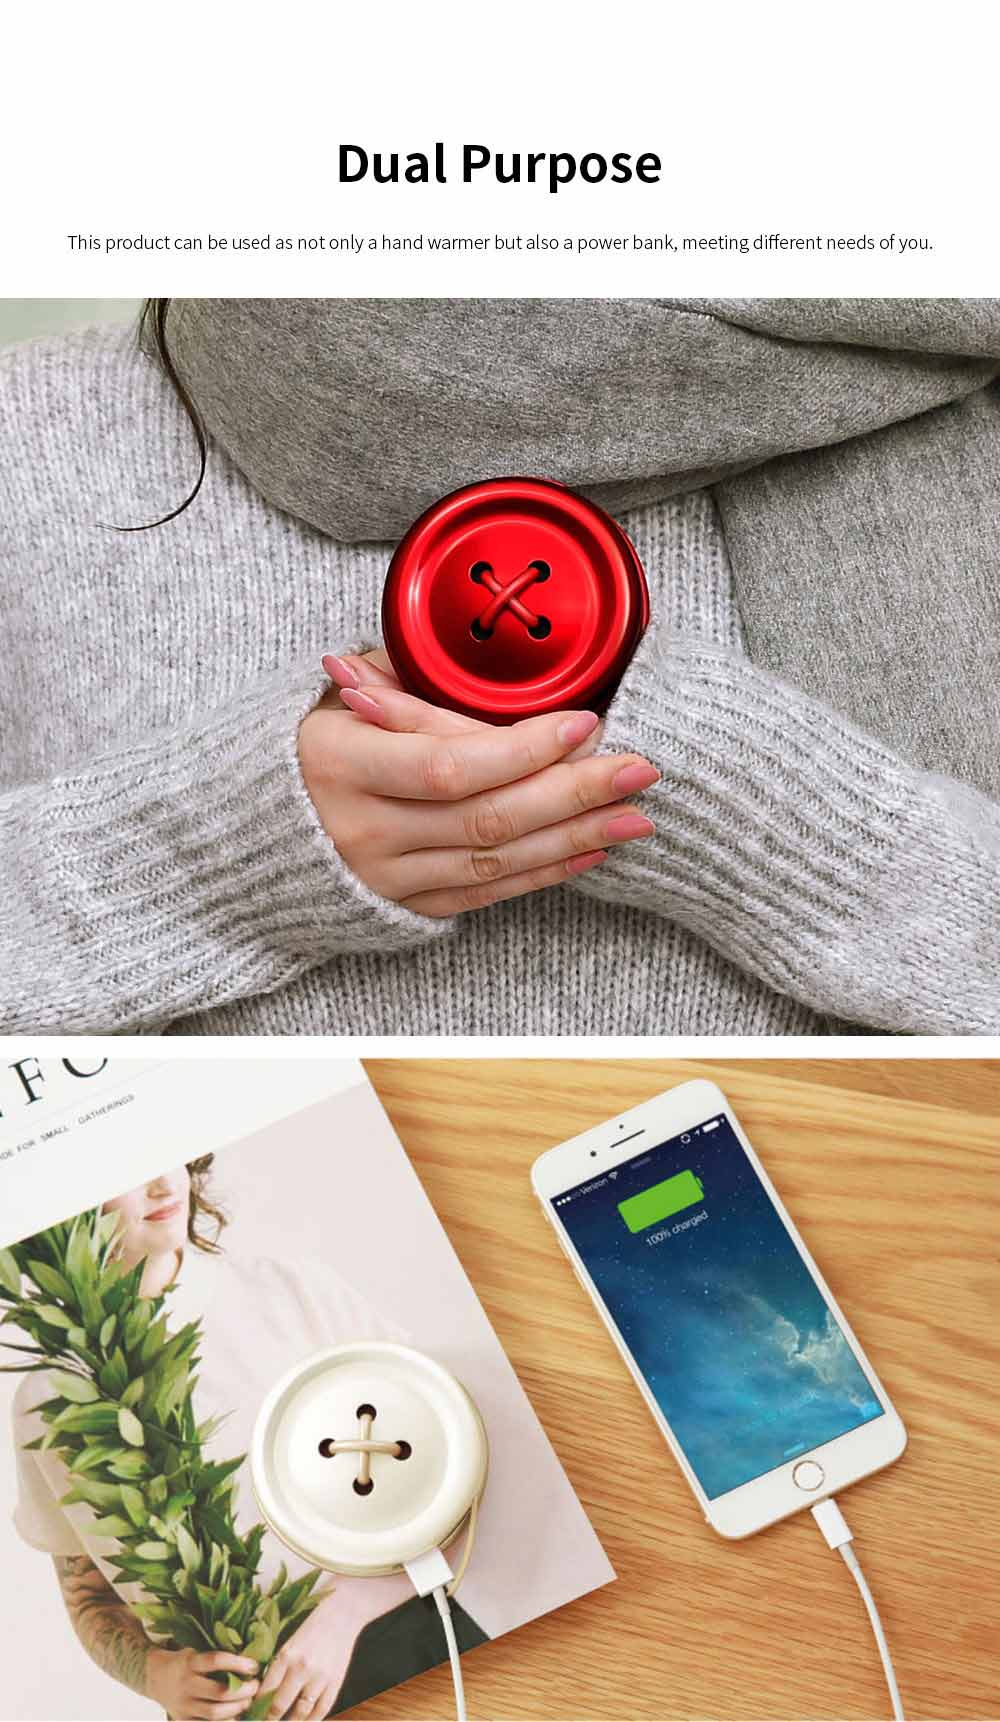 Portable Creative Cute Button Model Electronic Hand Warmer Power Bank Intelligent Temperature Control Quick Heating 4